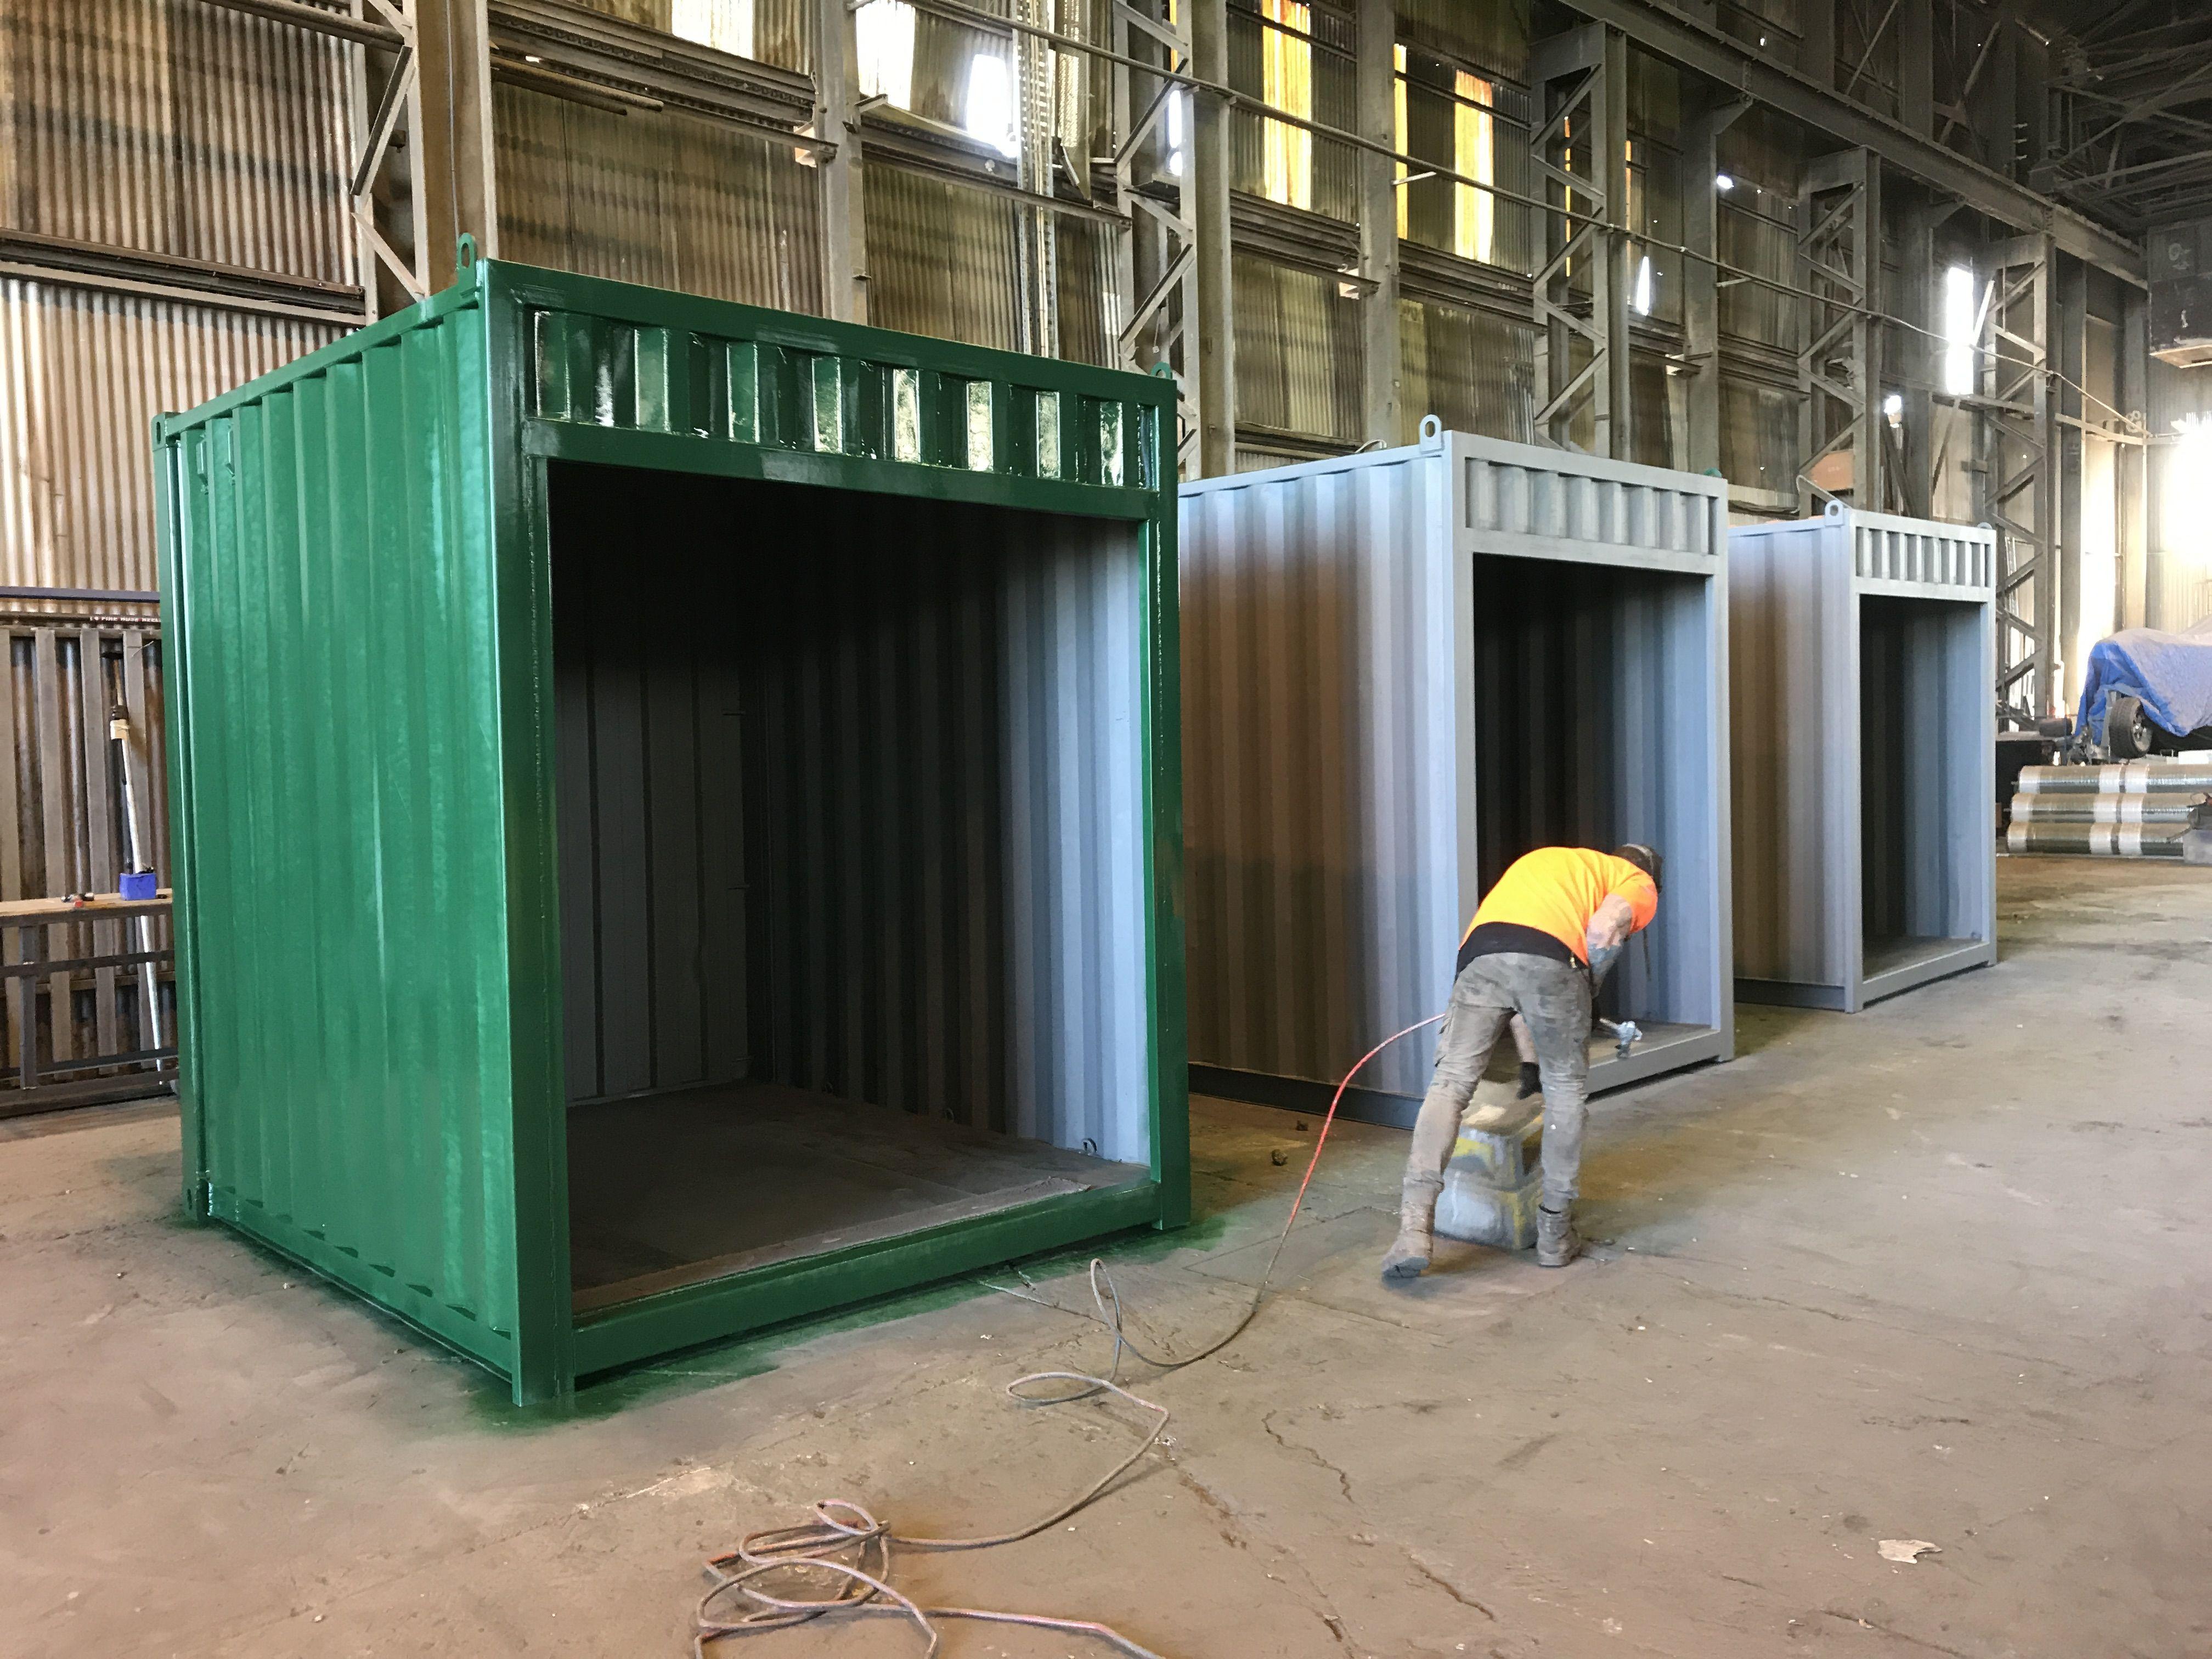 Shipping Containers For Sale In Melbourne Containerspace Shipping Containers For Sale Container Coffee Shop Metal Shop Building